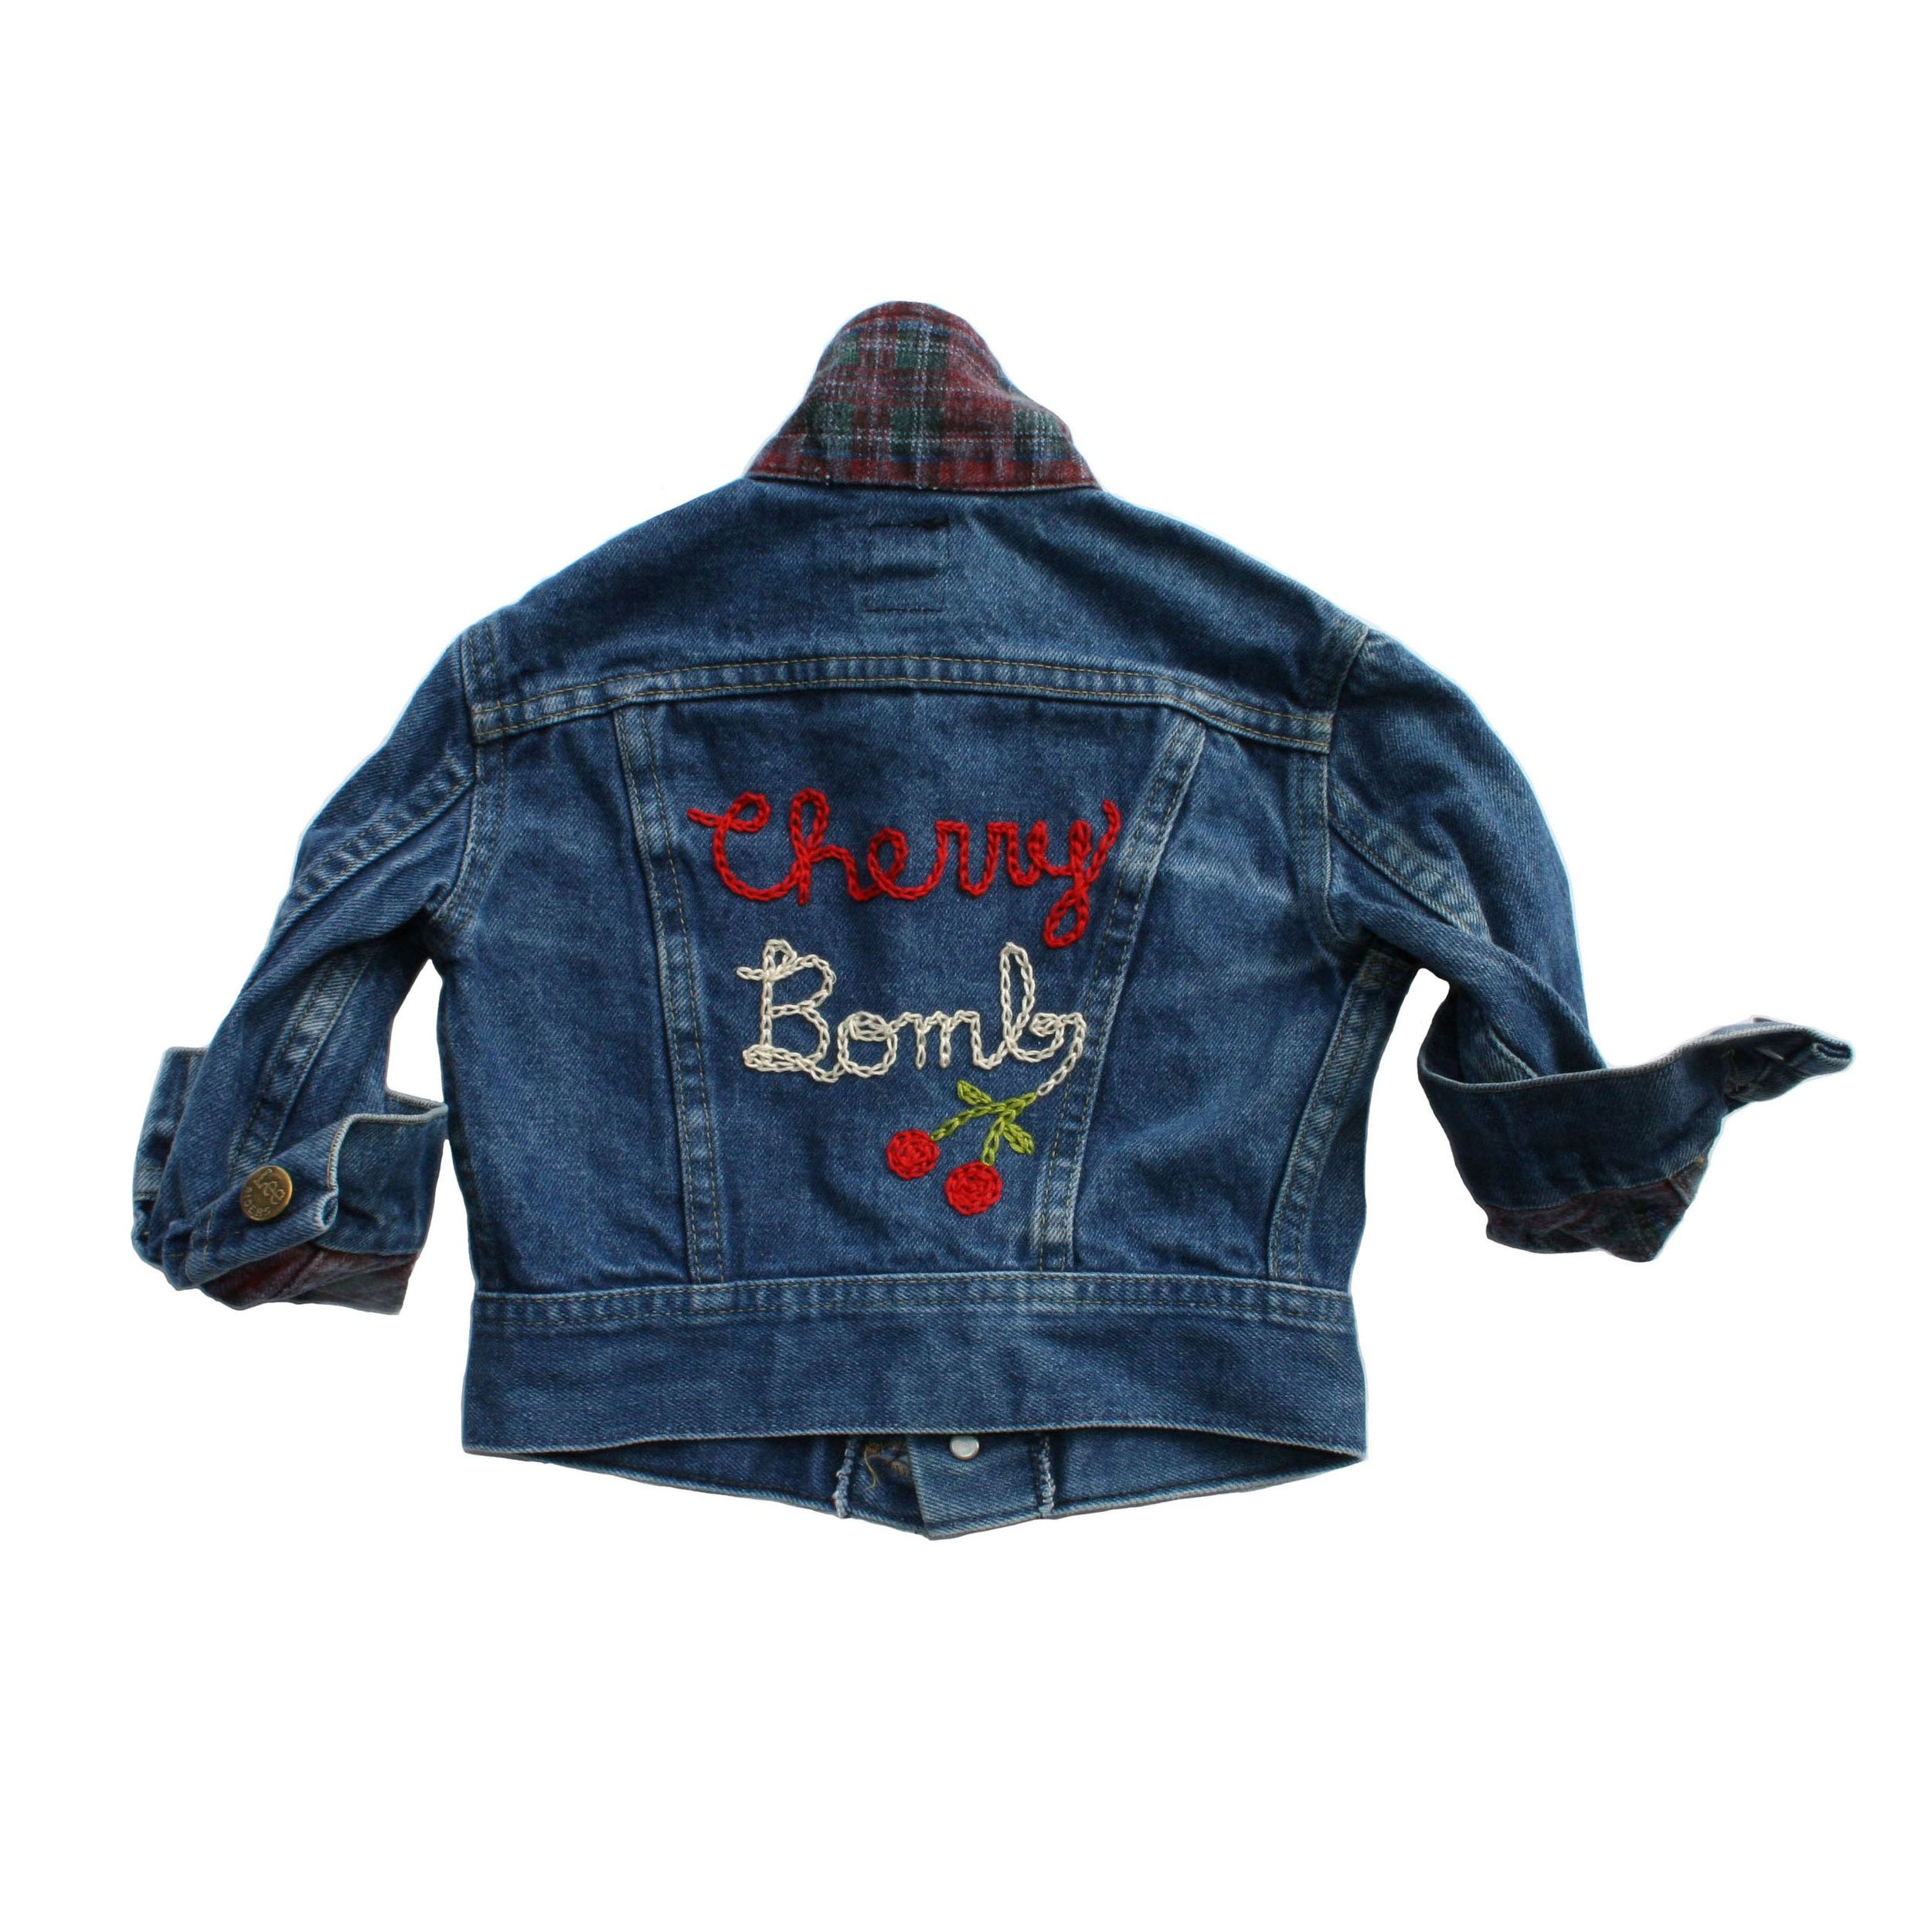 e6da451ec74 CHERRY BOMB   vintage LEE jean jacket